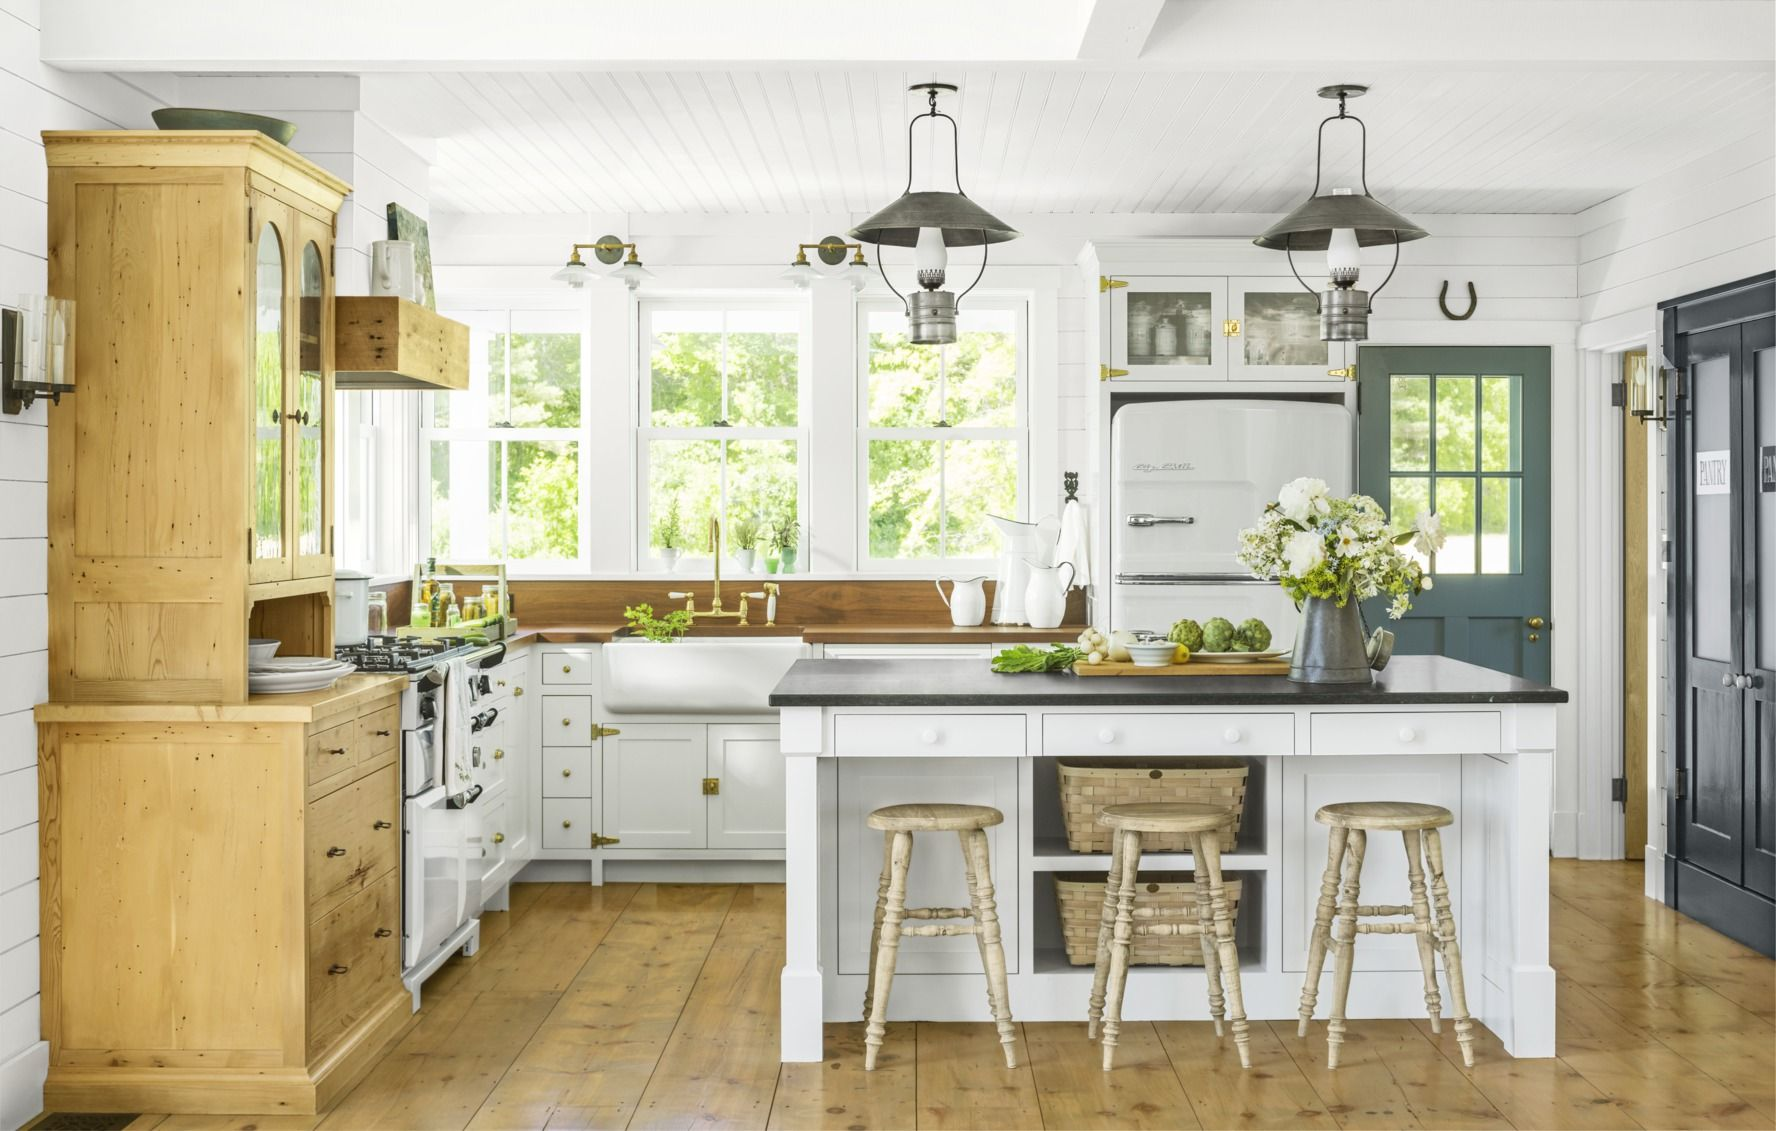 In Home Decorations 50 Best Farmhouse Style Ideas Rustic Home Decor